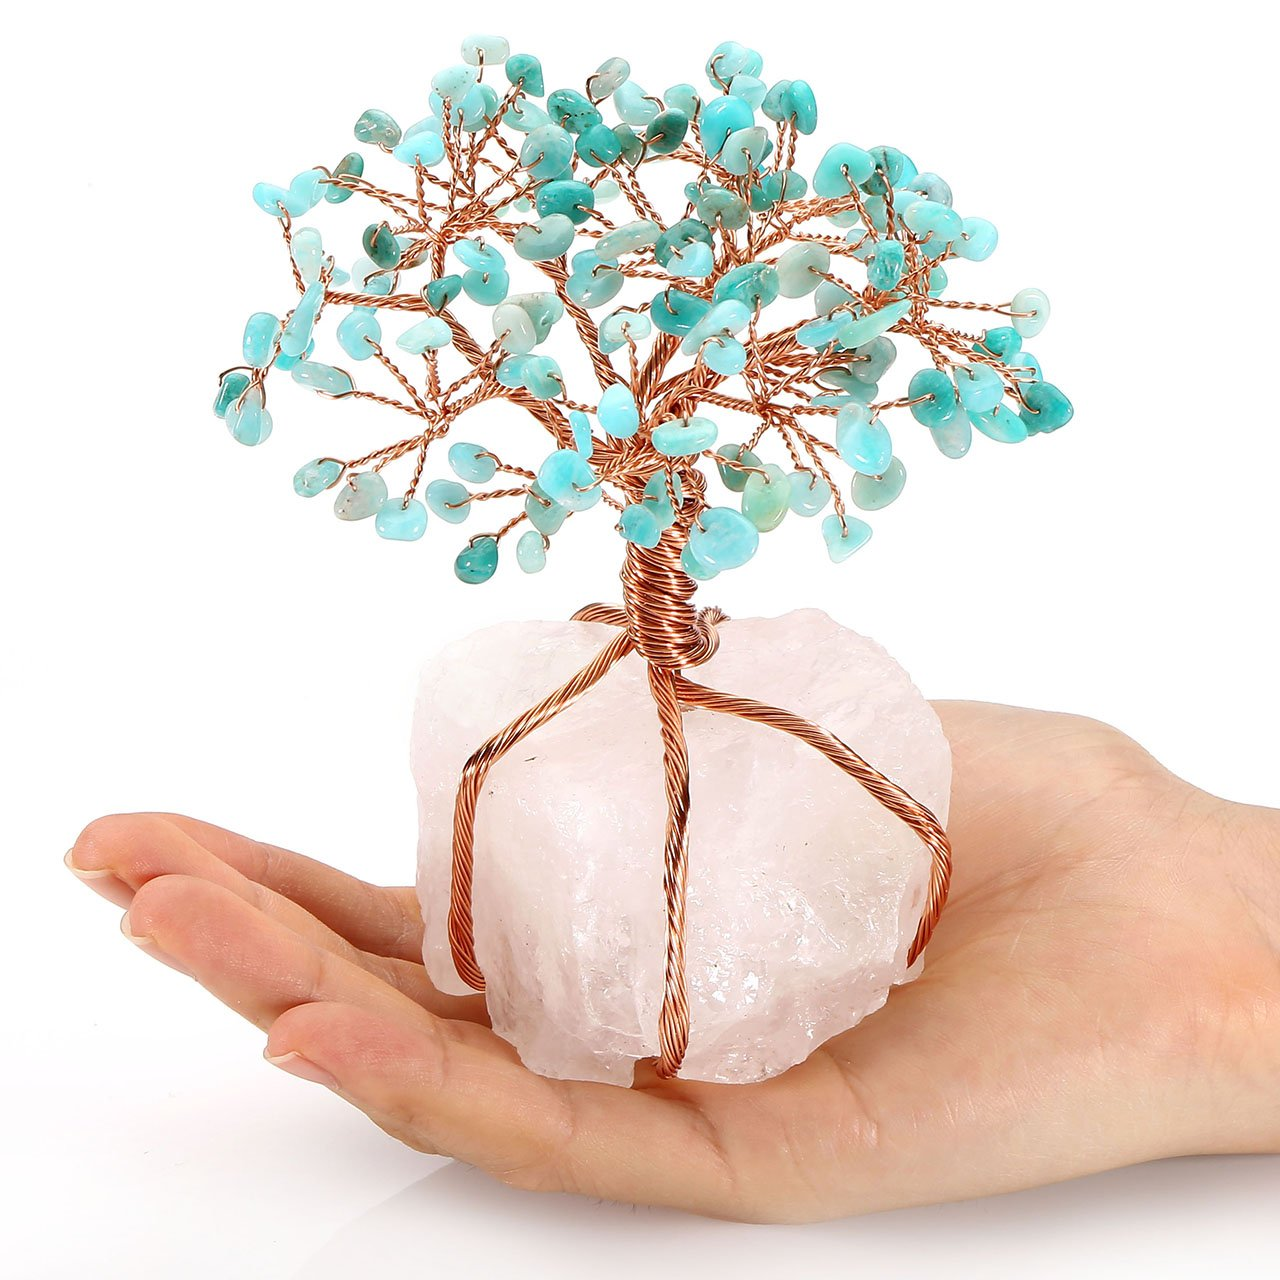 CrystalTears 7 Chakra Healing Crystal Money Tree Feng Shui Ornament Copper Wrapped on Clear Quartz Cluster Base Figurine Decoration for Wealth and Luck